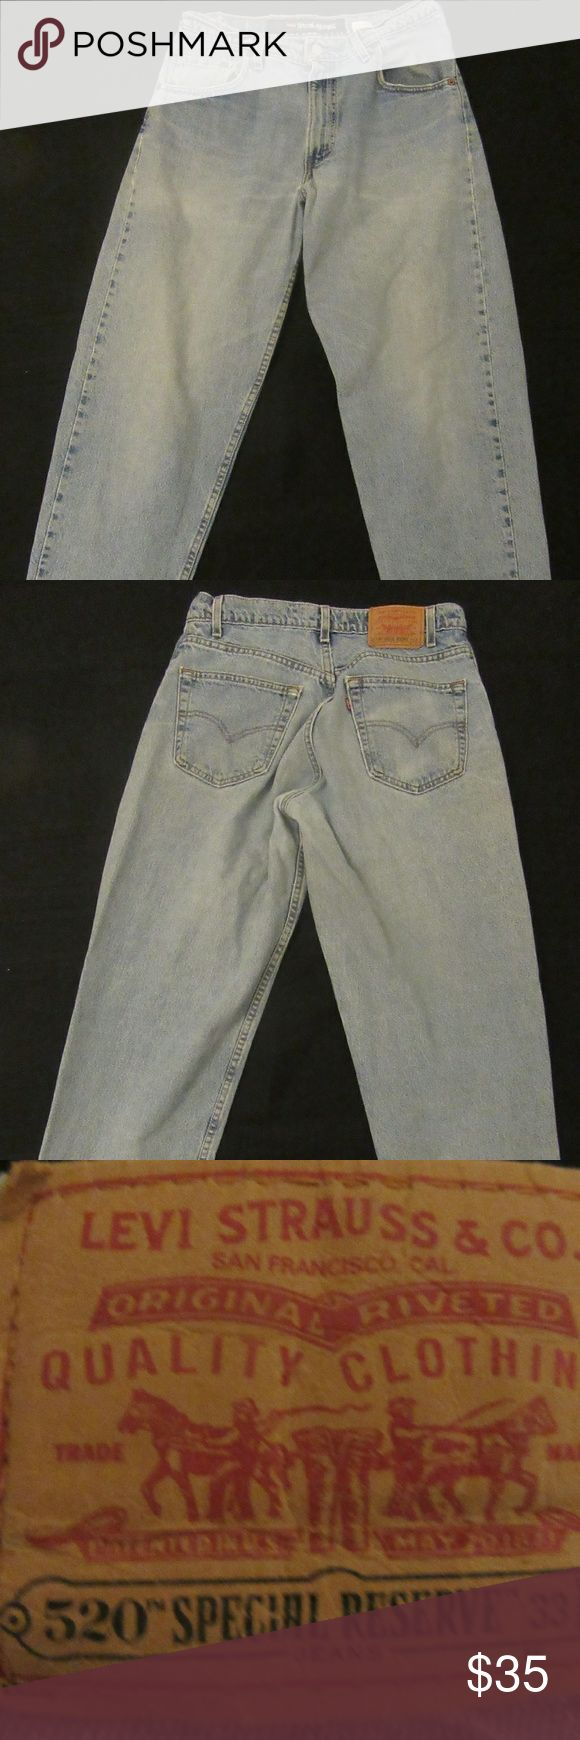 VTG Levis 520 Special Reserve Denim Jeans 32x30 great shape: tag says 33 W but measures 32 W  VTG Levis 520 Special Reserve Denim Jeans Light Wash Loose Fit Tapered Leg  ? Levi's Jeans Slim Straight